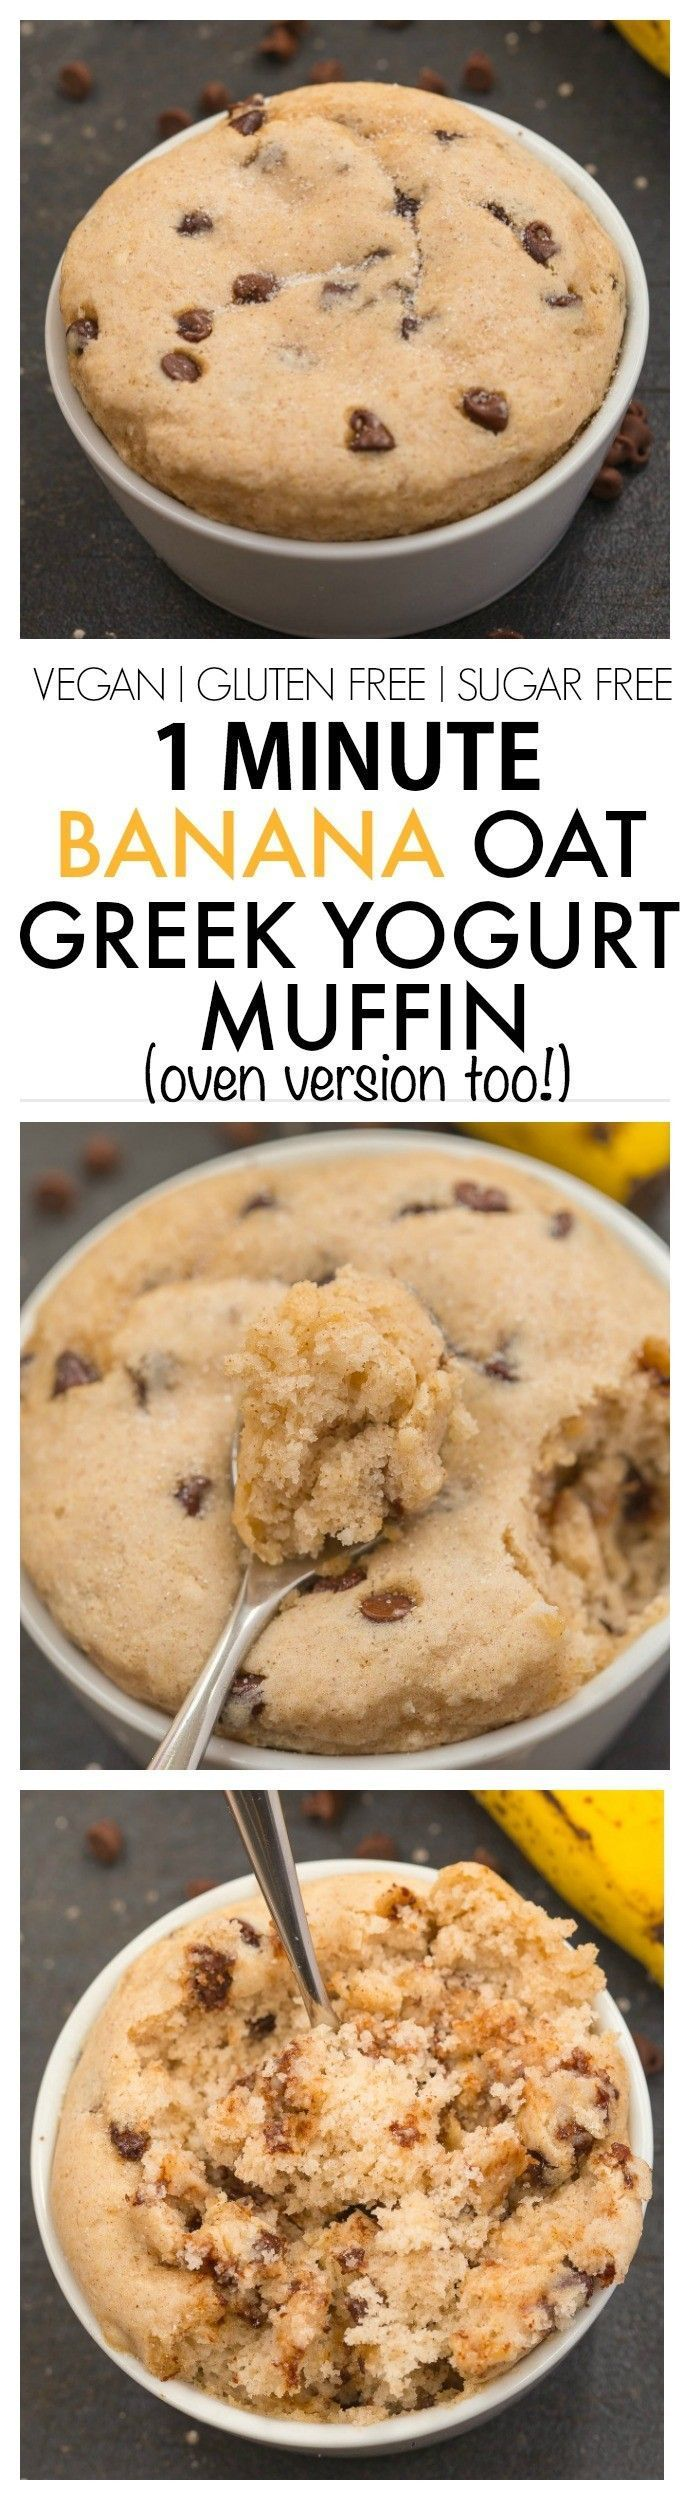 Healthy Flourless 1 Minute Greek Yogurt Banana Oat Muffin- Quick, easy and SO delicious with NO oil, butter, flour or sugar! {vegan, gluten free, dairy free, sugar free recipe}